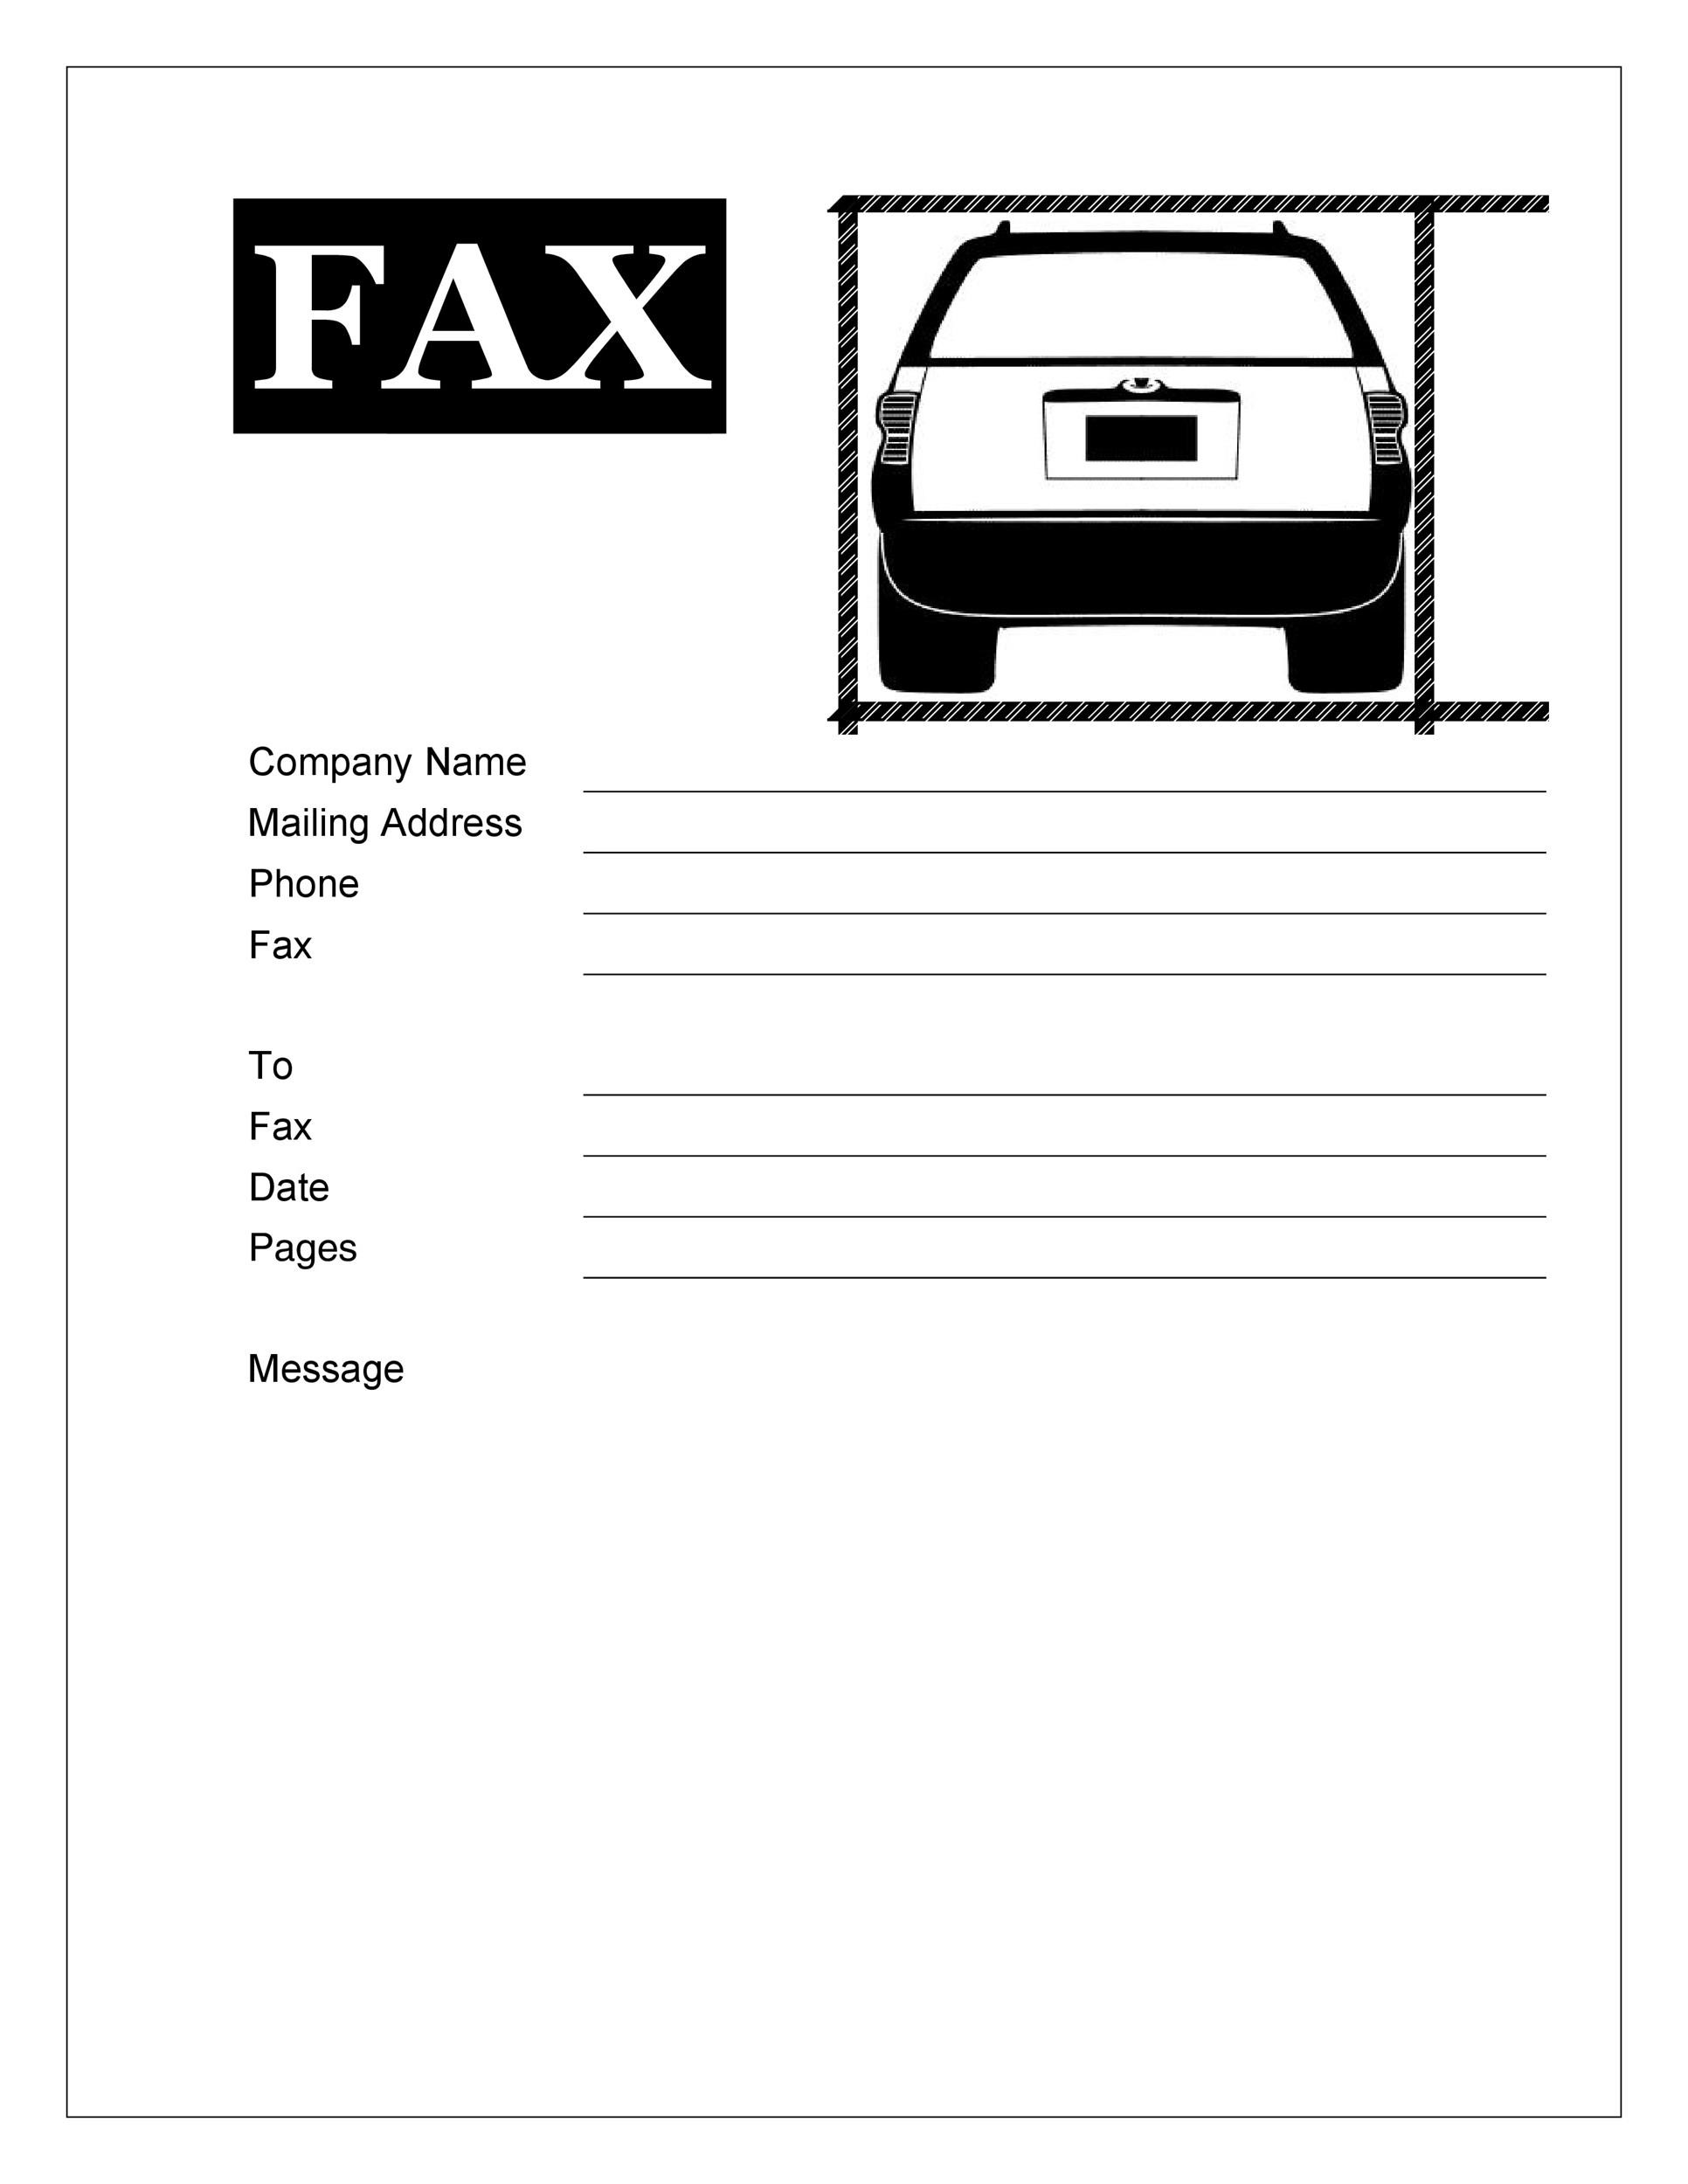 Free Fax Cover sheet Template 20